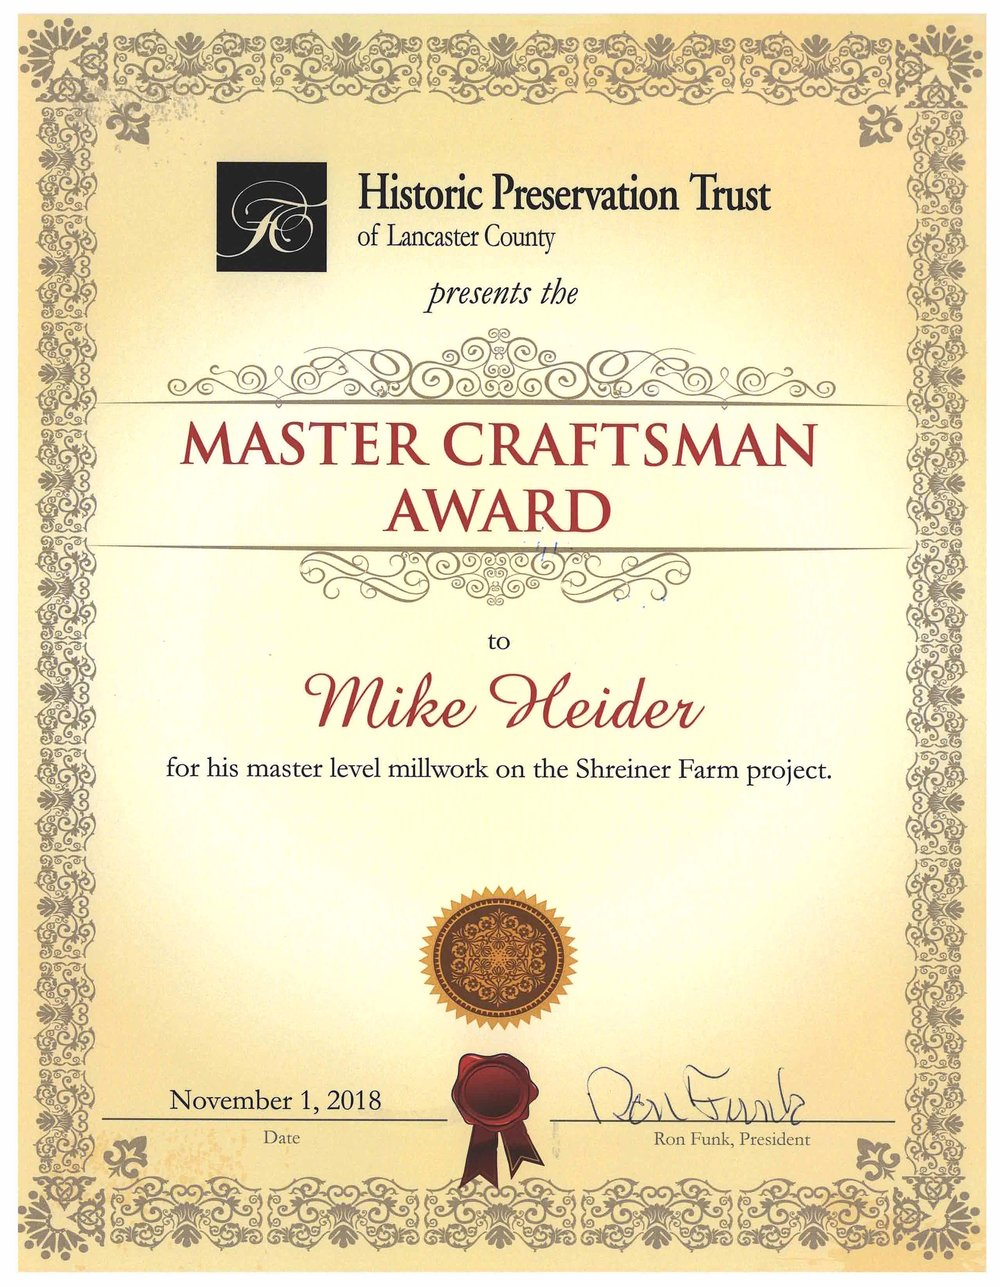 Heider, Mike Award Cert.jpg